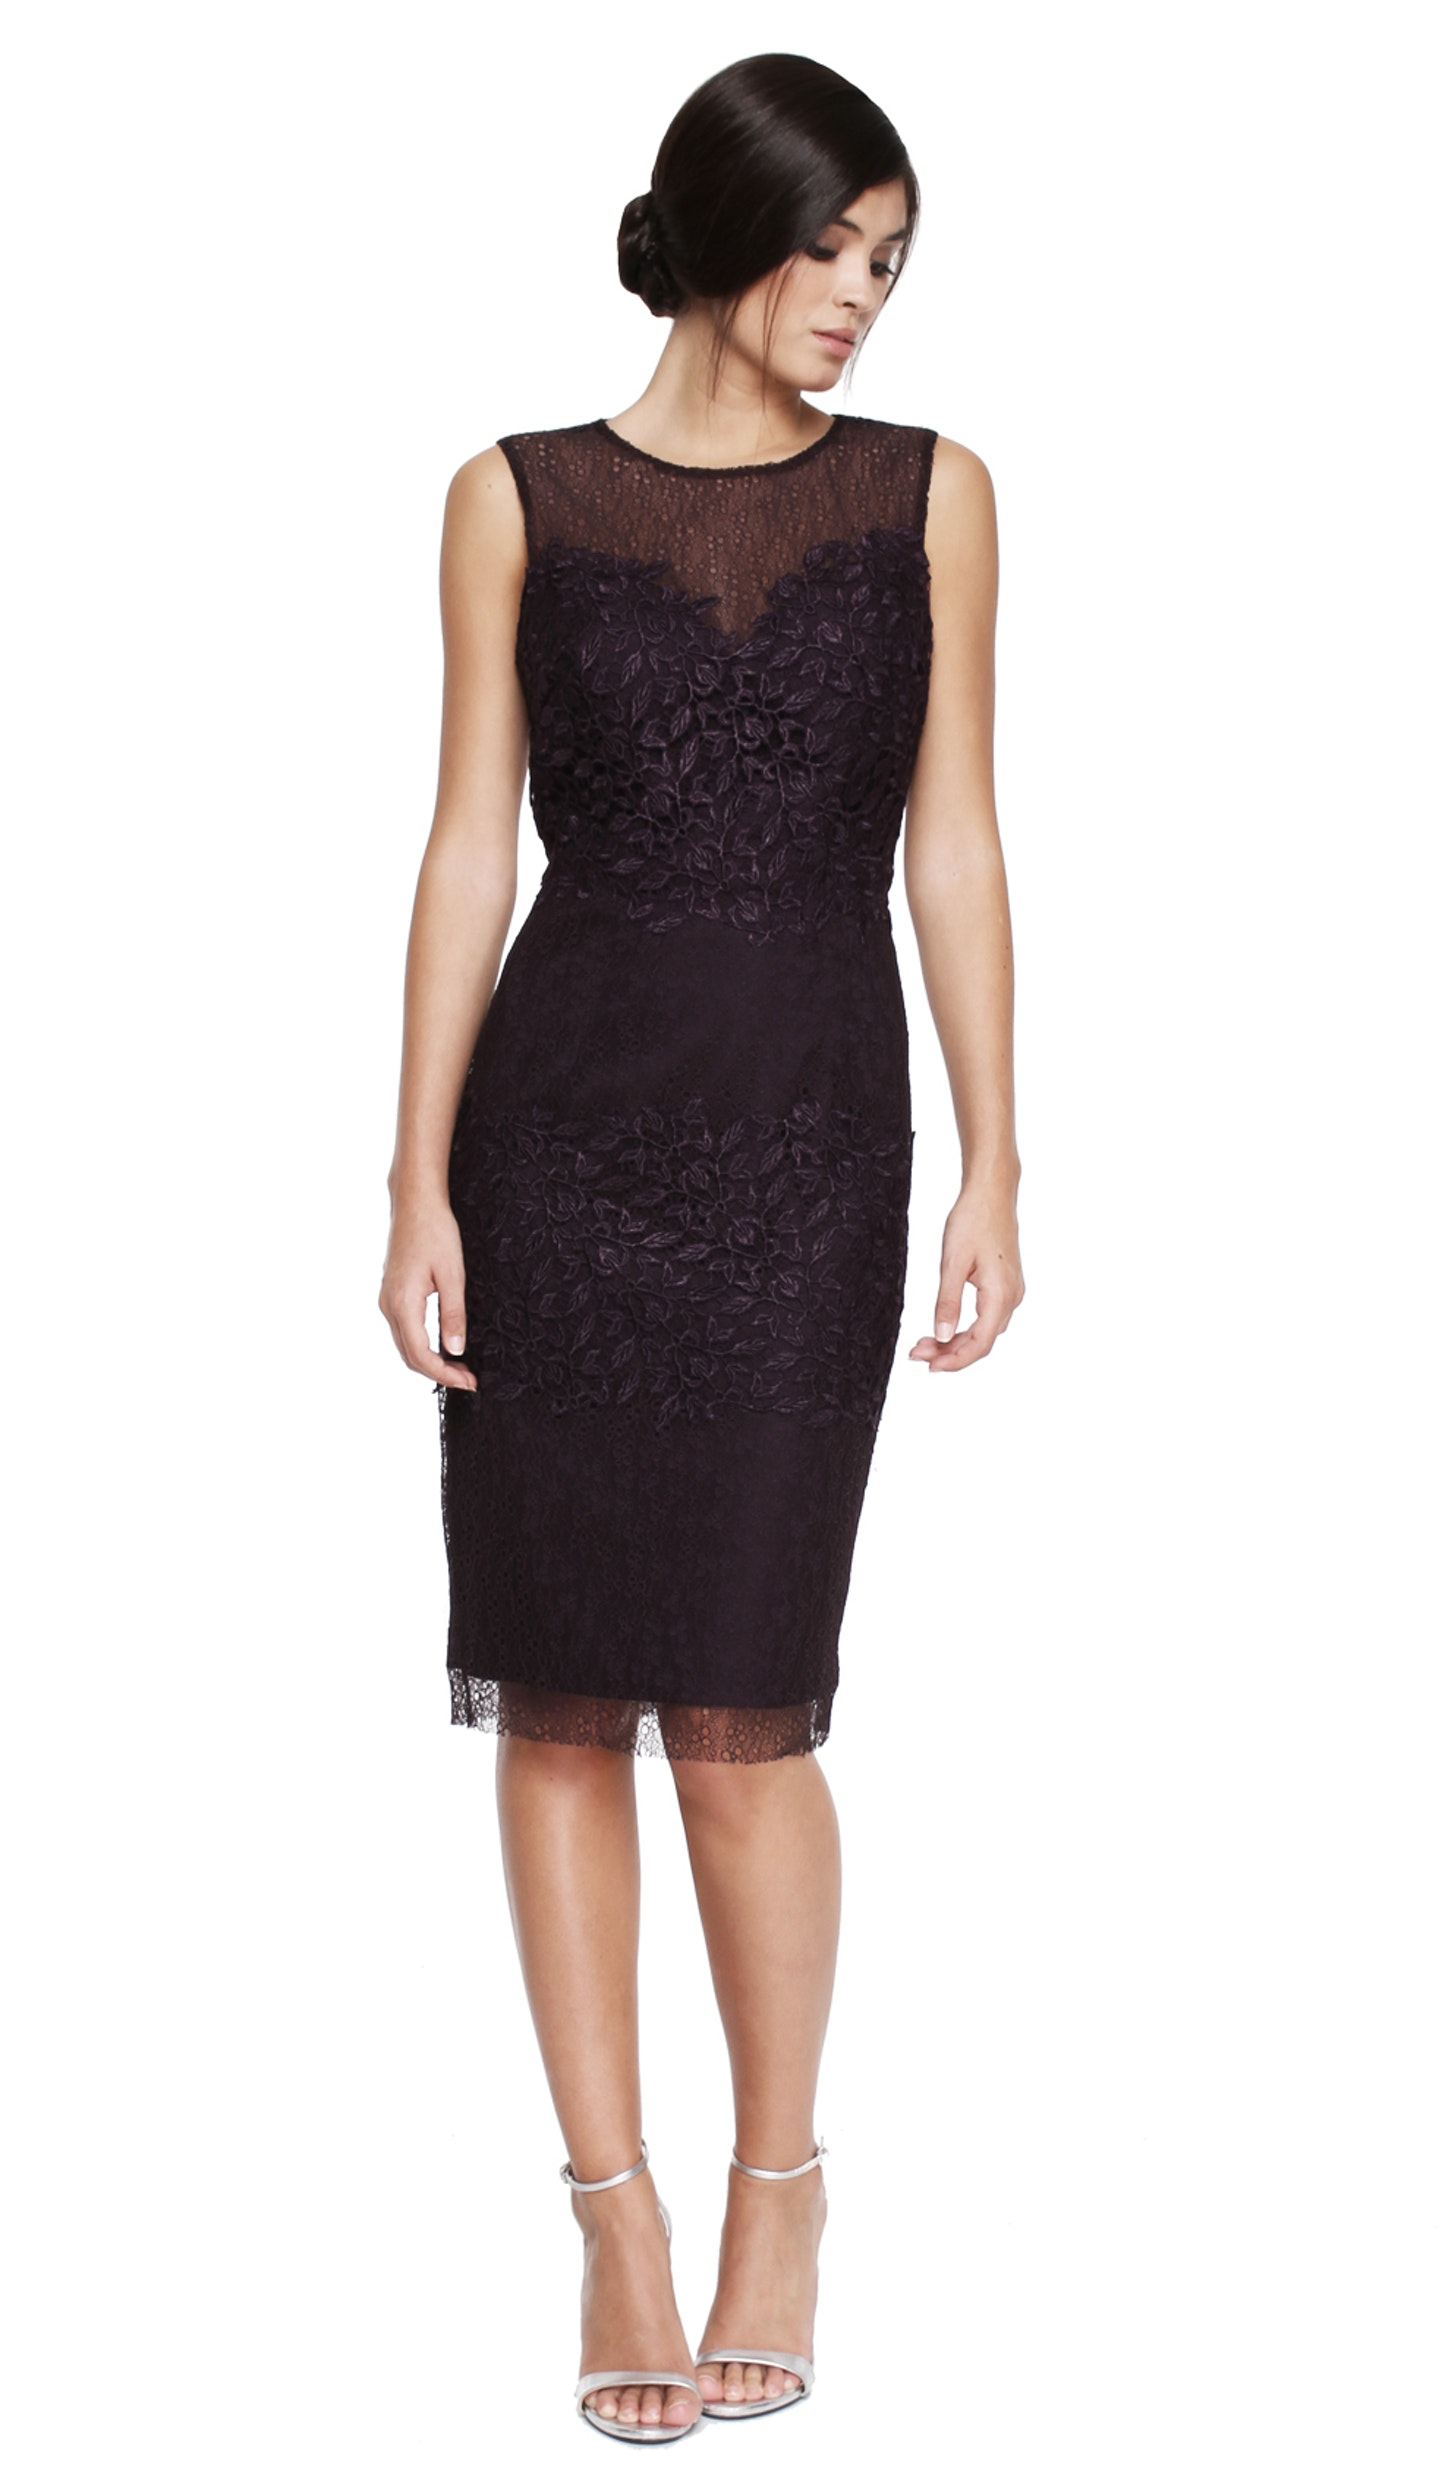 Purple Lace Cocktail Dress - ML MONIQUE LHUILLIER — Chic by Choice ...